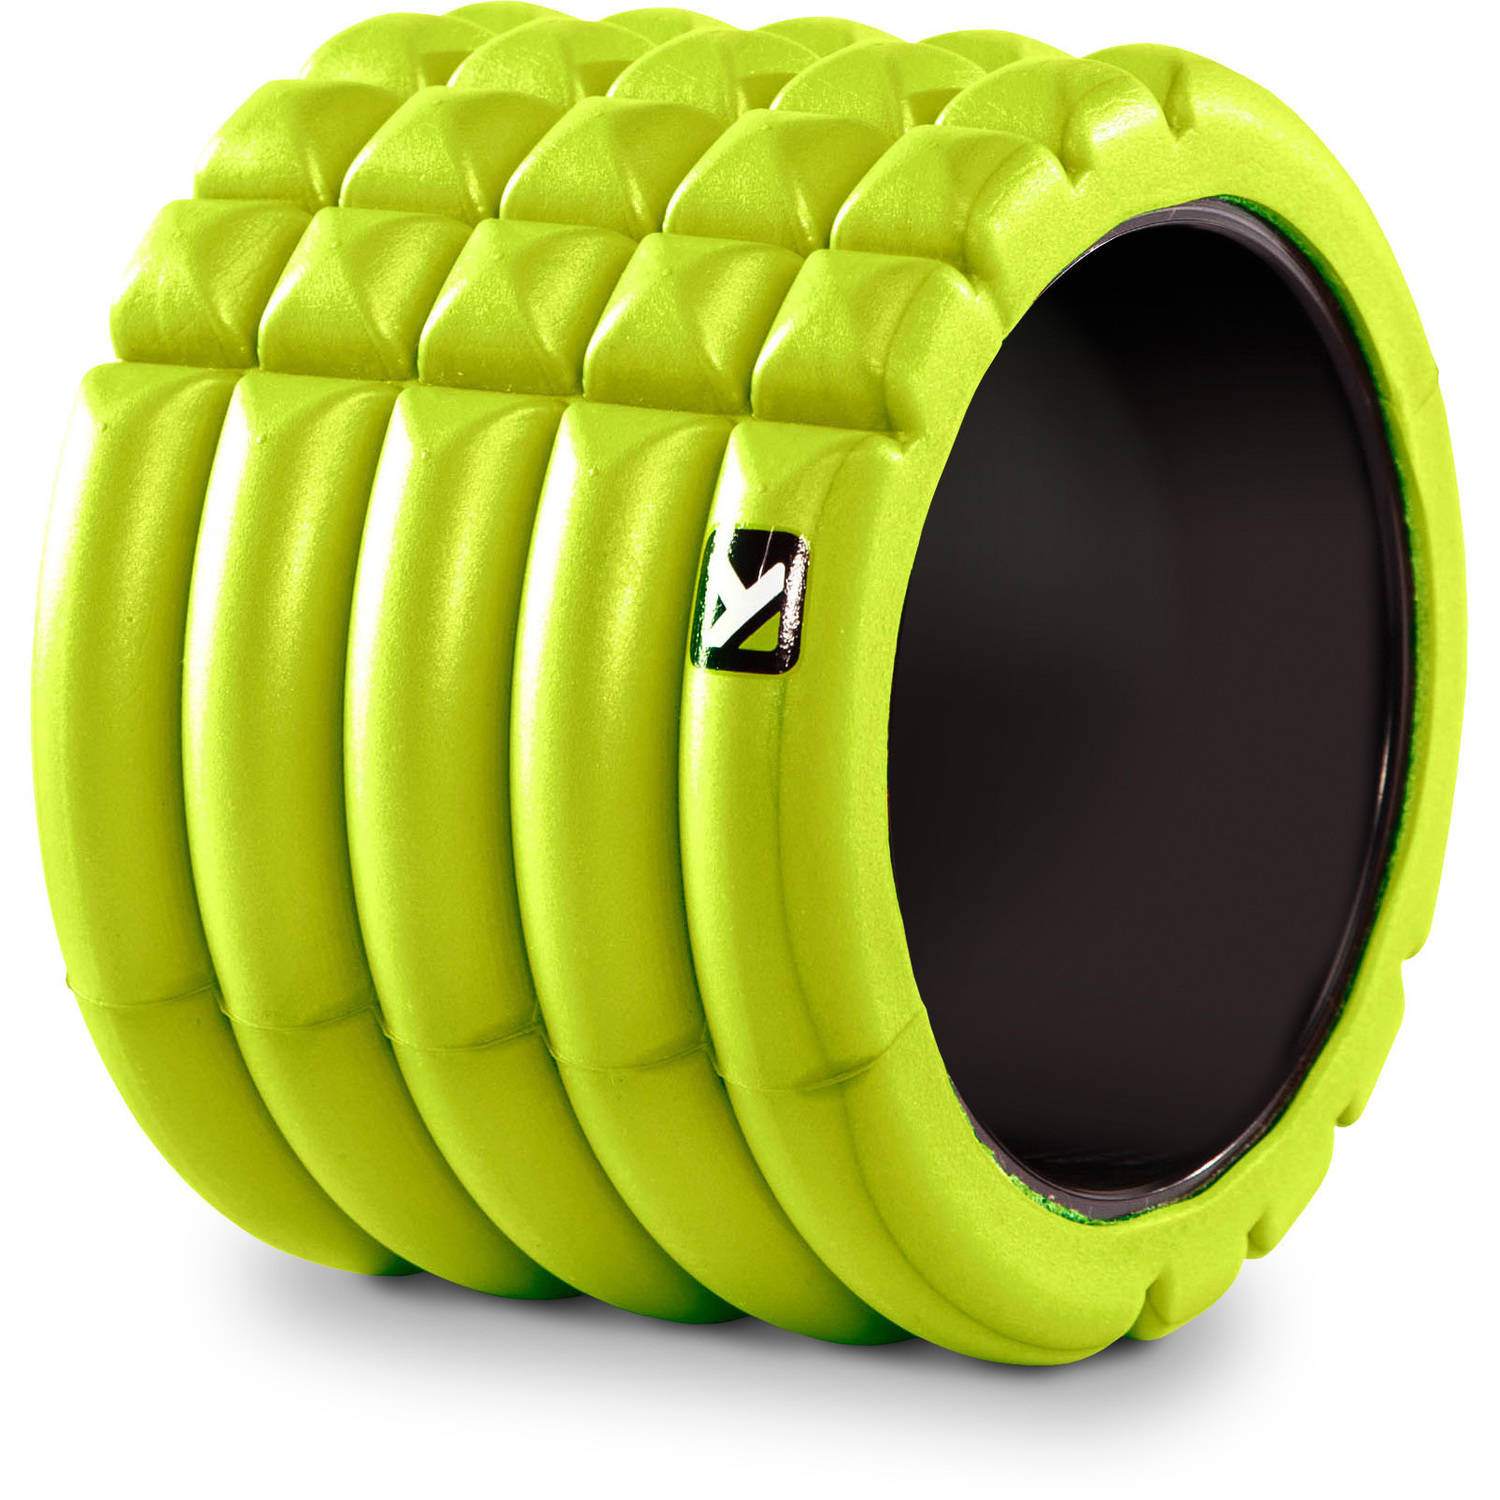 TriggerPoint GRID Mini Foam Roller with 250 lb Limit